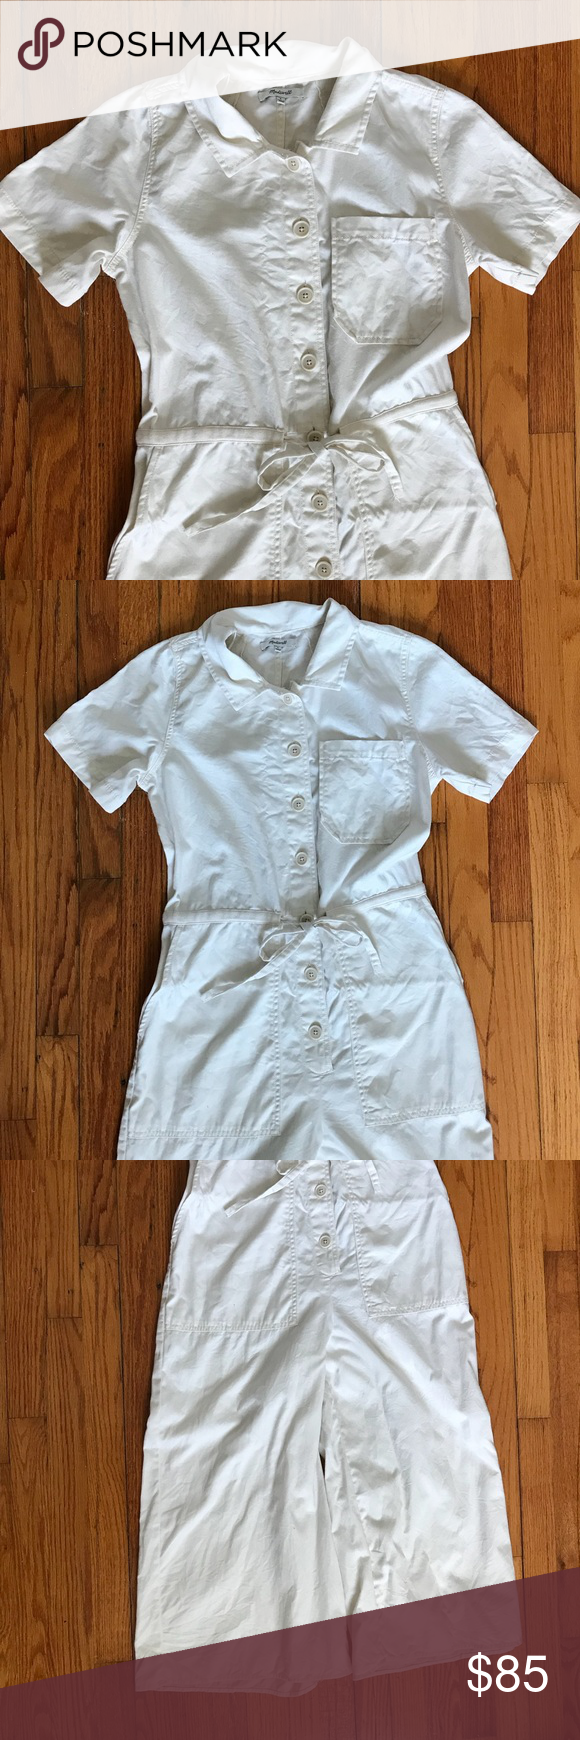 Madewell Utility Jumpsuit White utility jumpsuit from Madewell. Only worn once! …